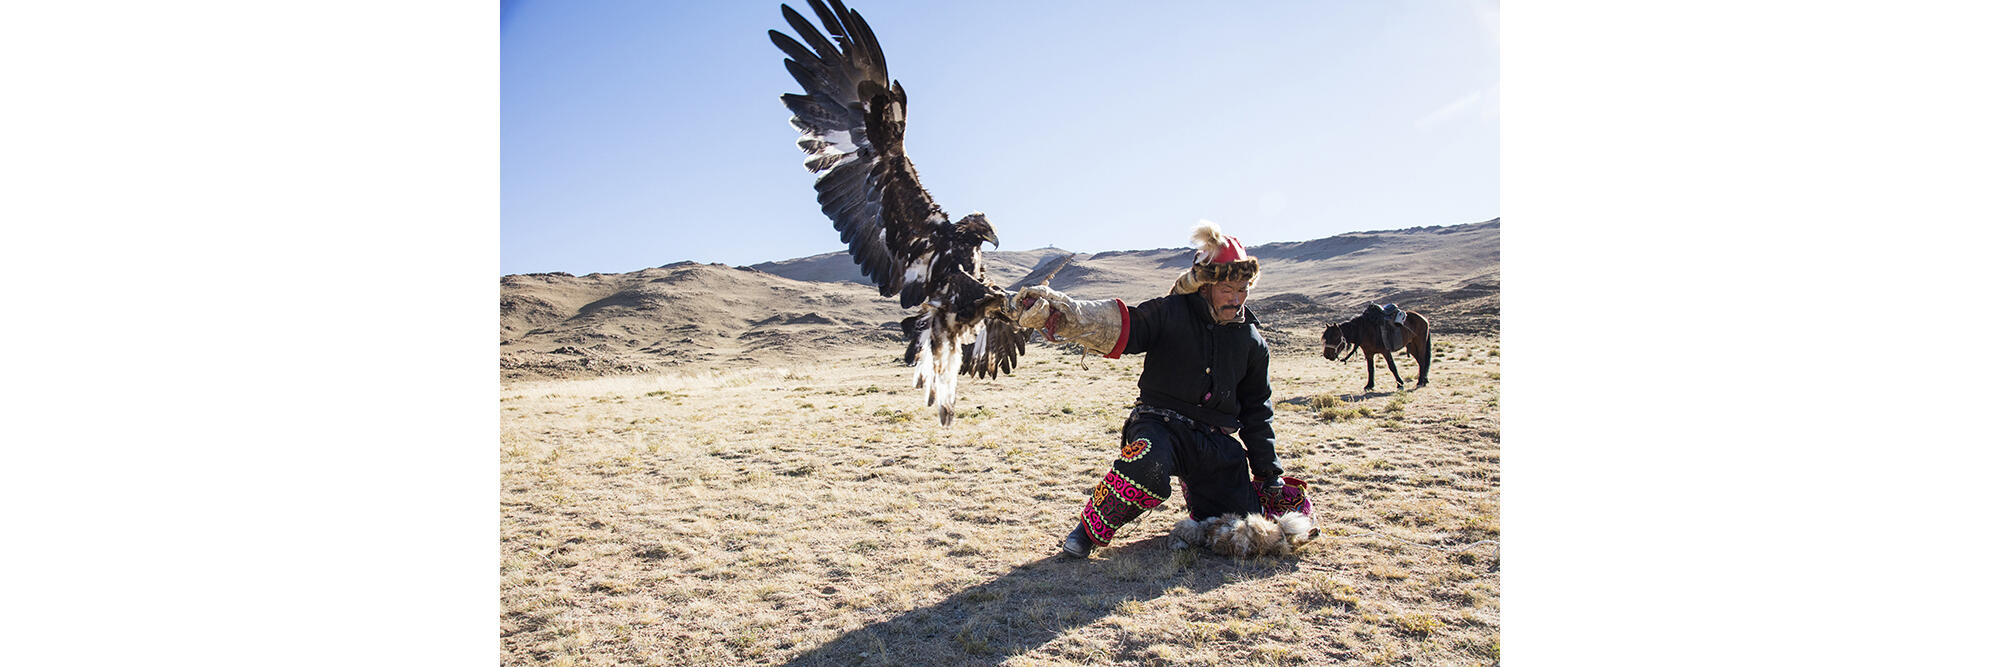 Dalaikhan Itale, an eagle hunter for more than 35 years, continues to work to perfect his calls and landing techniques. Cedric Angeles/Intersection Photos